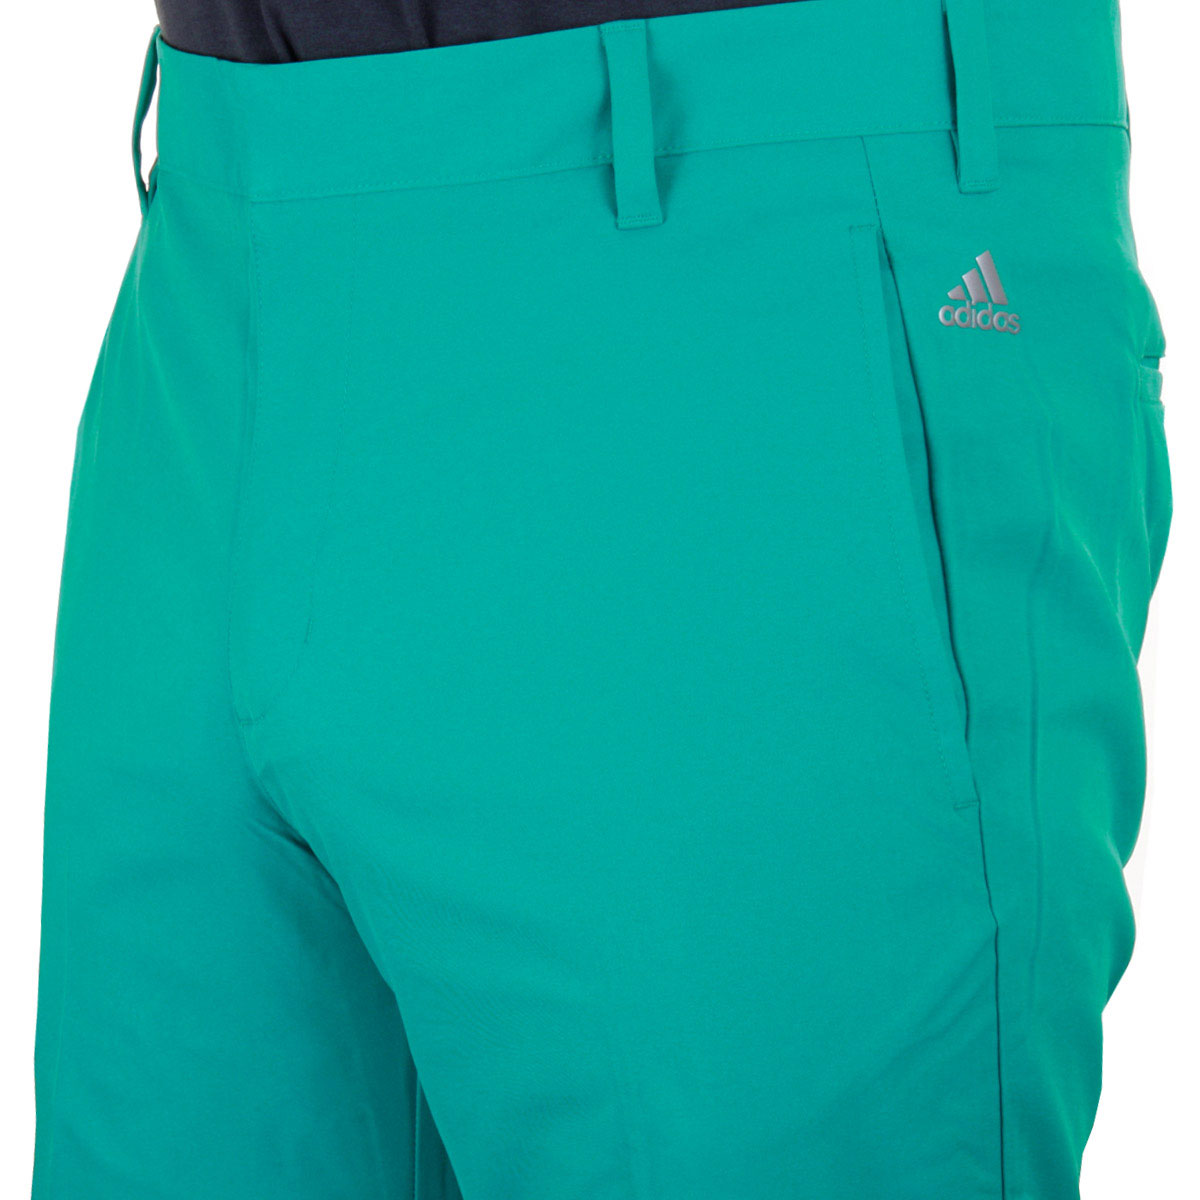 Adidas junior fashion textured golf trousers Bumps on Back of Tongue Pictures Causes, STD, Lie Bumps